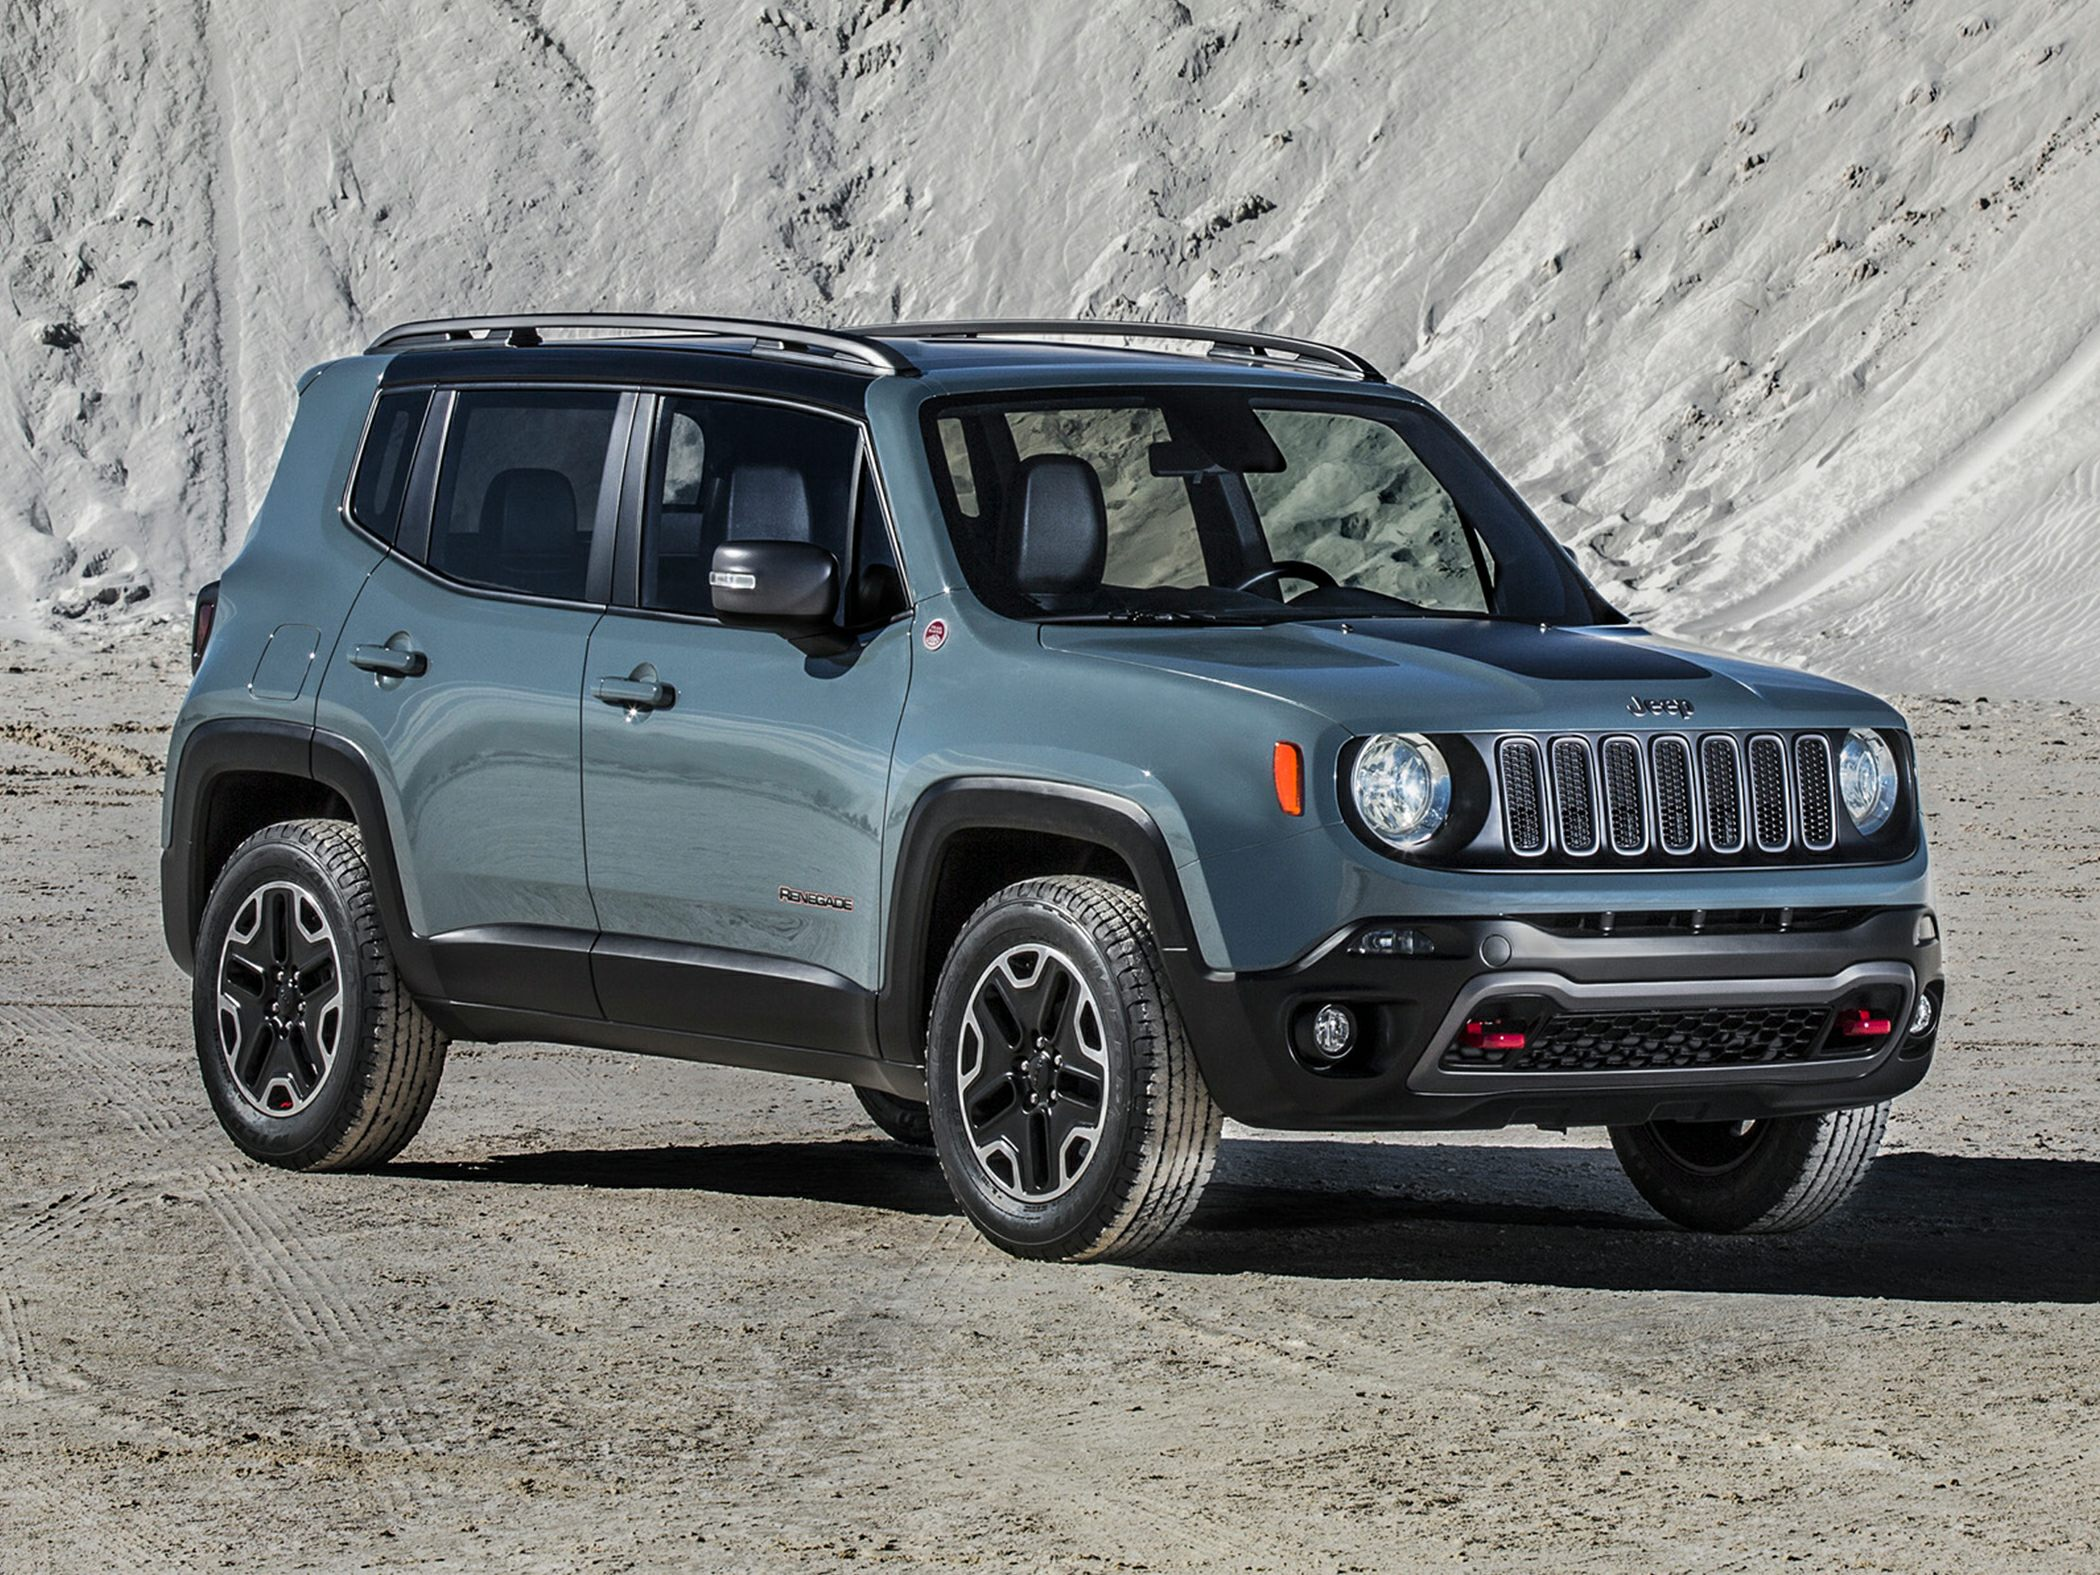 2018 Jeep Renegade Trailhawk 4 Dr Sport Utility at South 20 Dodge